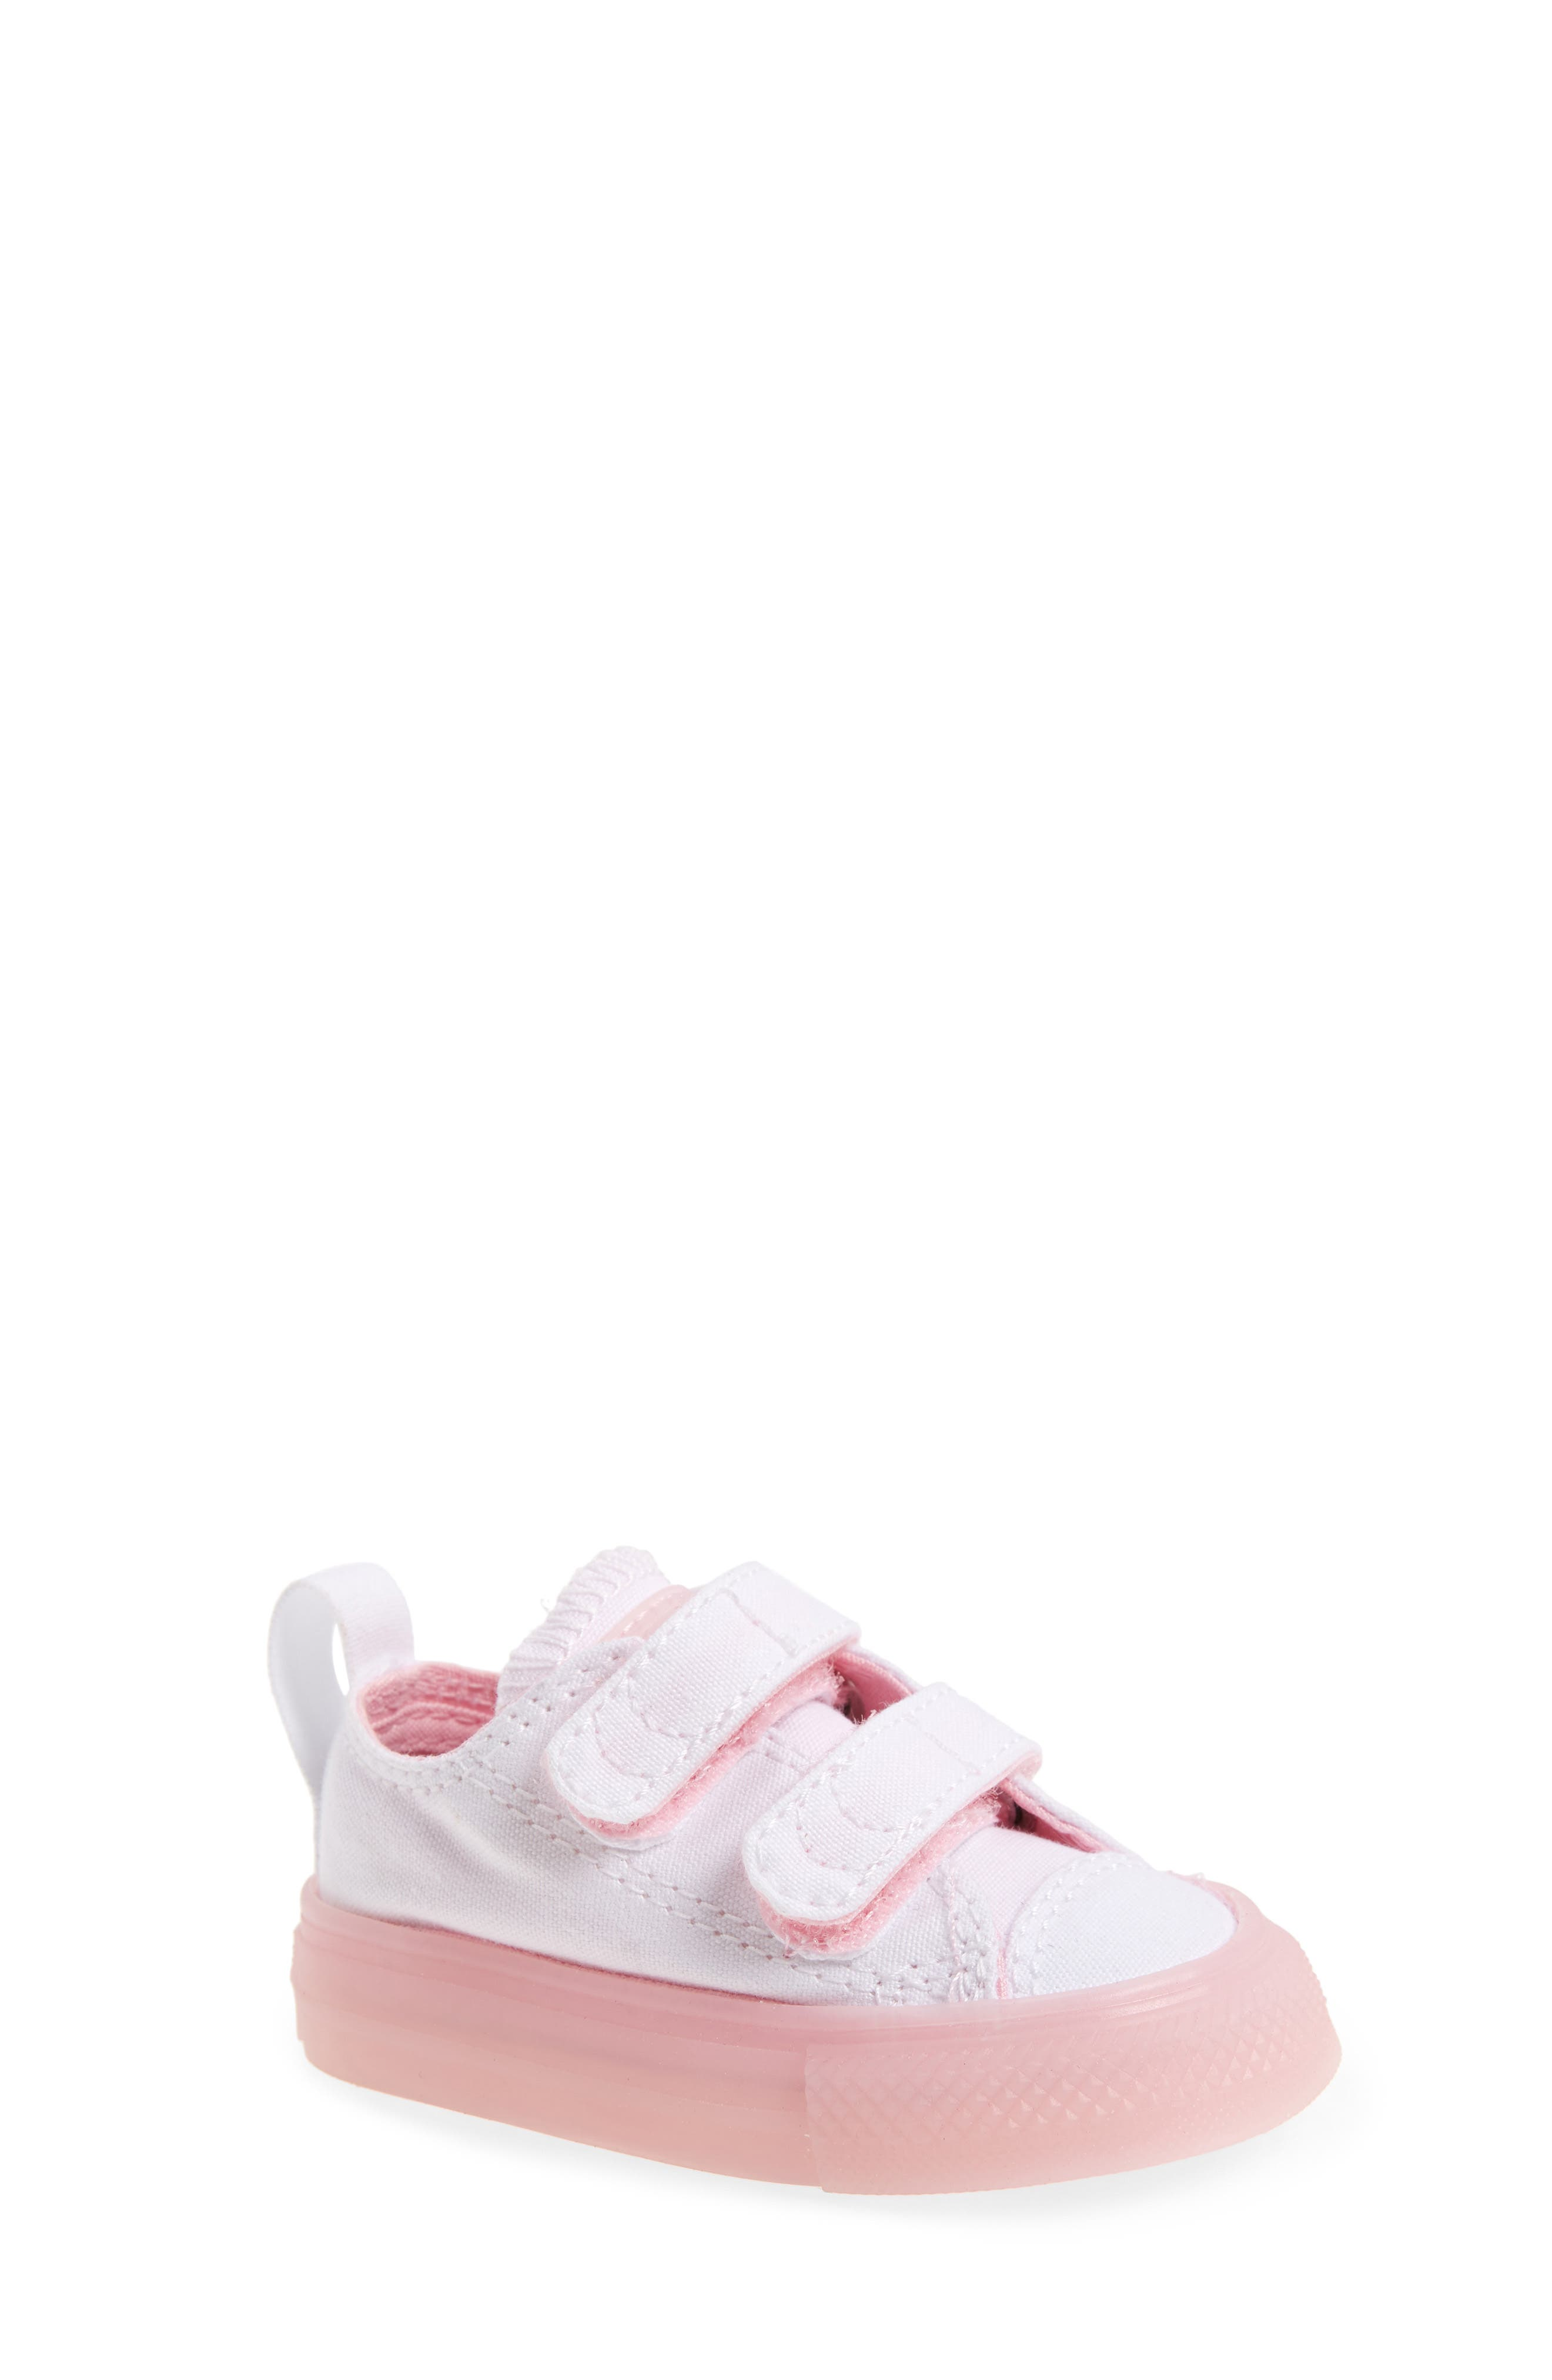 Chuck Taylor<sup>®</sup> All Star<sup>®</sup> Jelly Sneaker,                             Main thumbnail 1, color,                             White/ Cherry